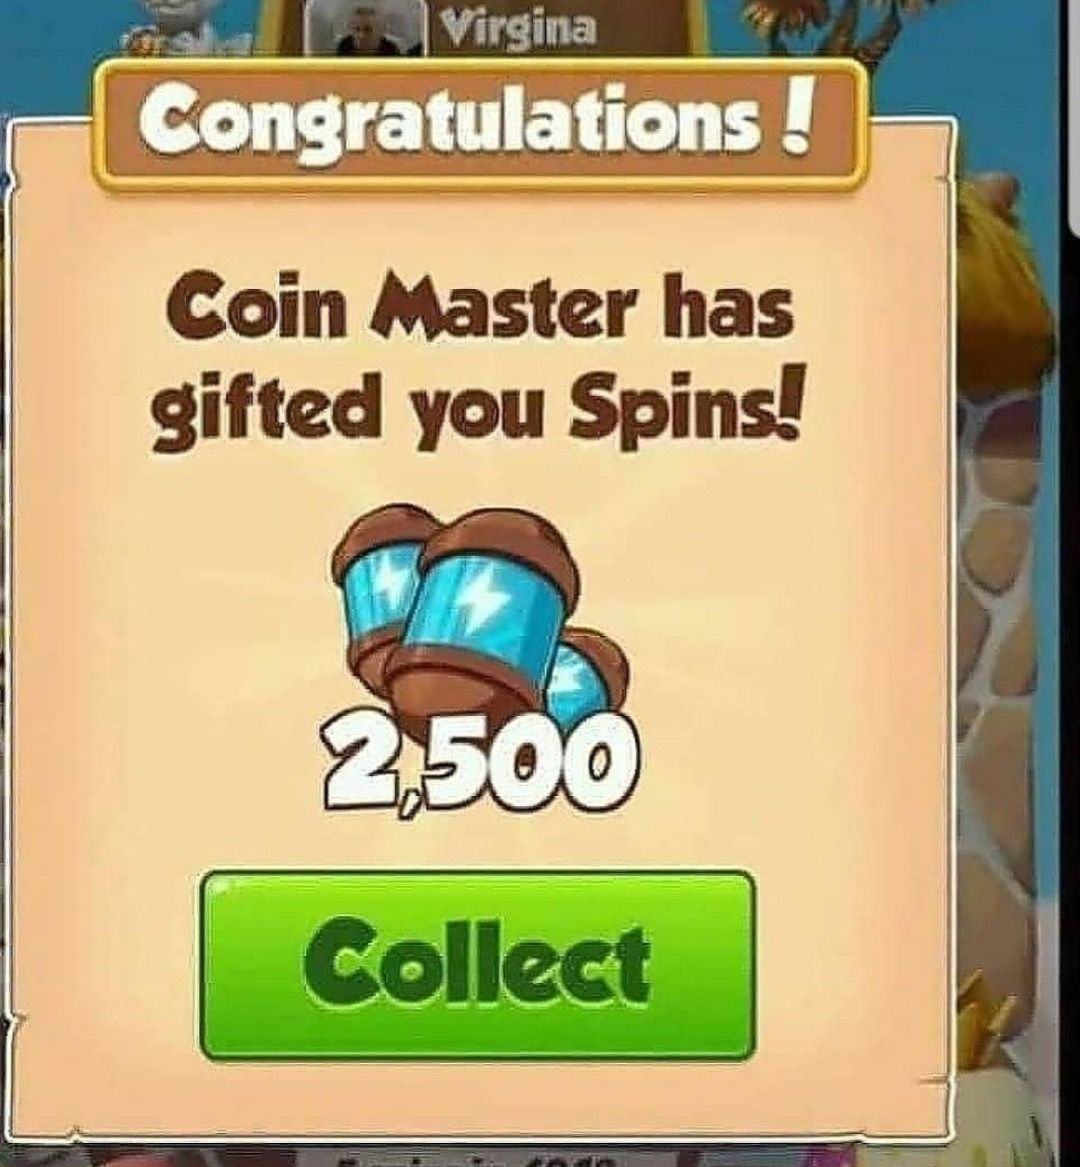 Coin master free spins and coins link 2020 march